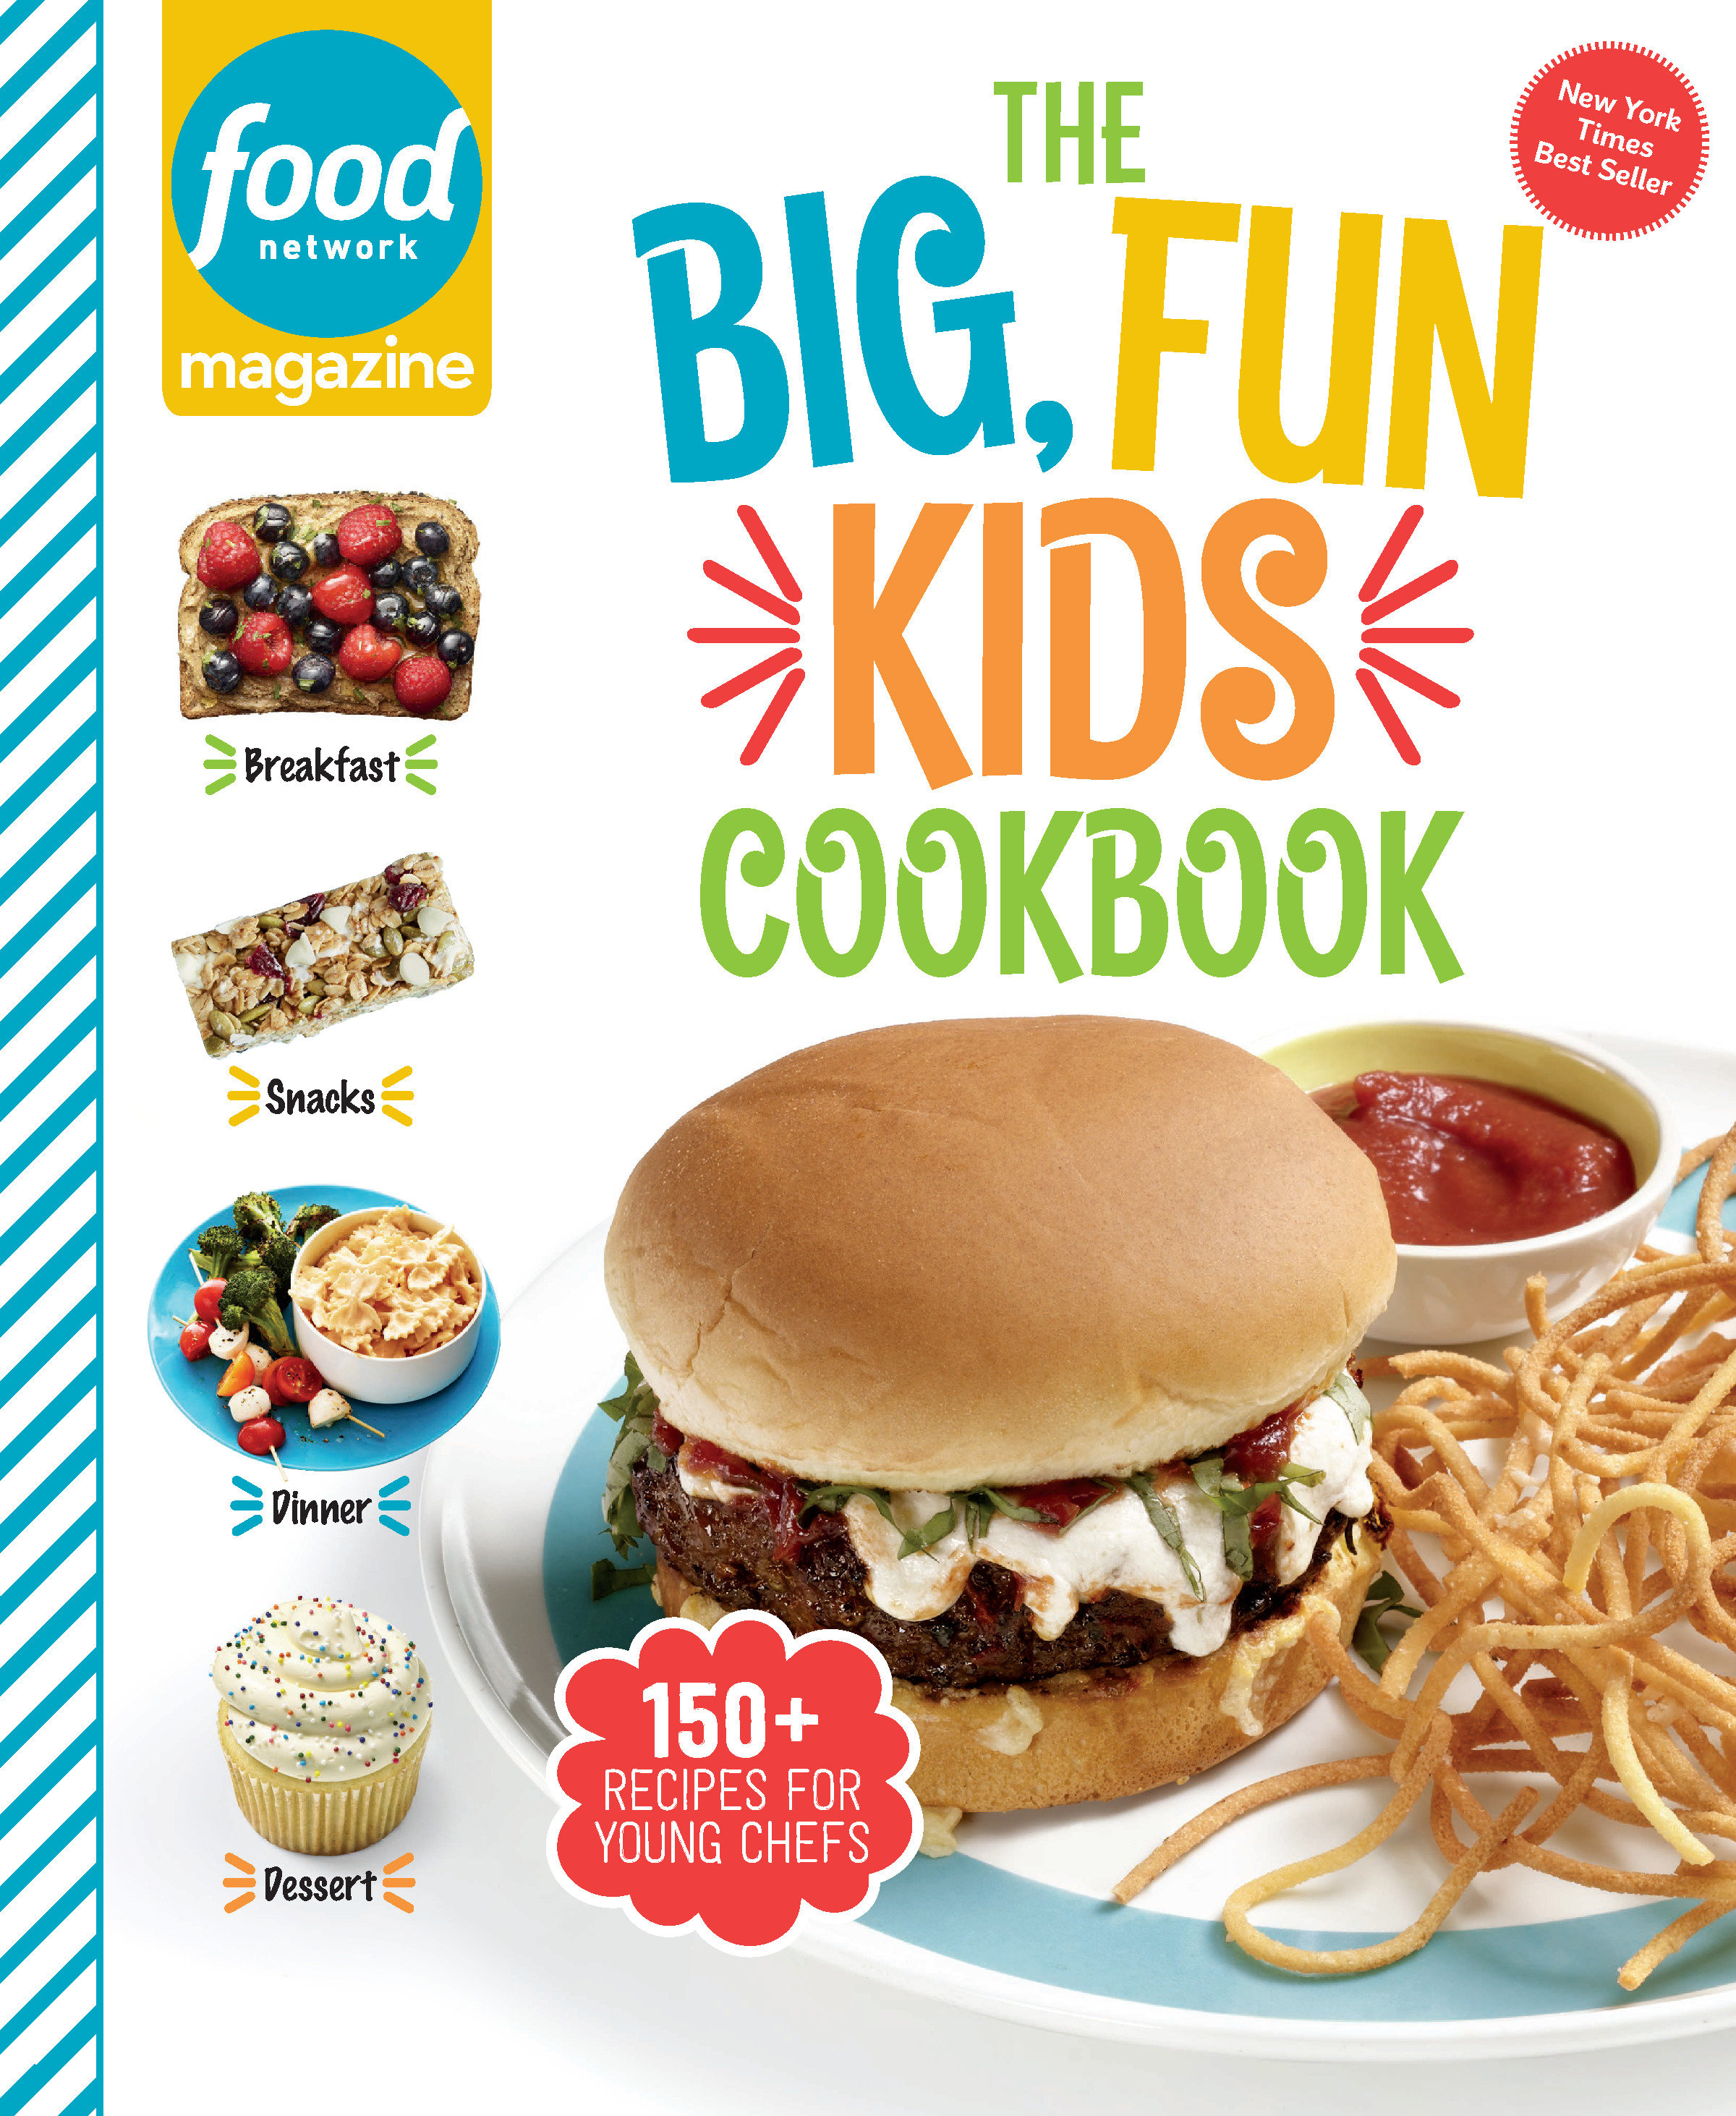 Food Network Magazine The Big, Fun Kids Cookbook 150+ Recipes for Young Chefs